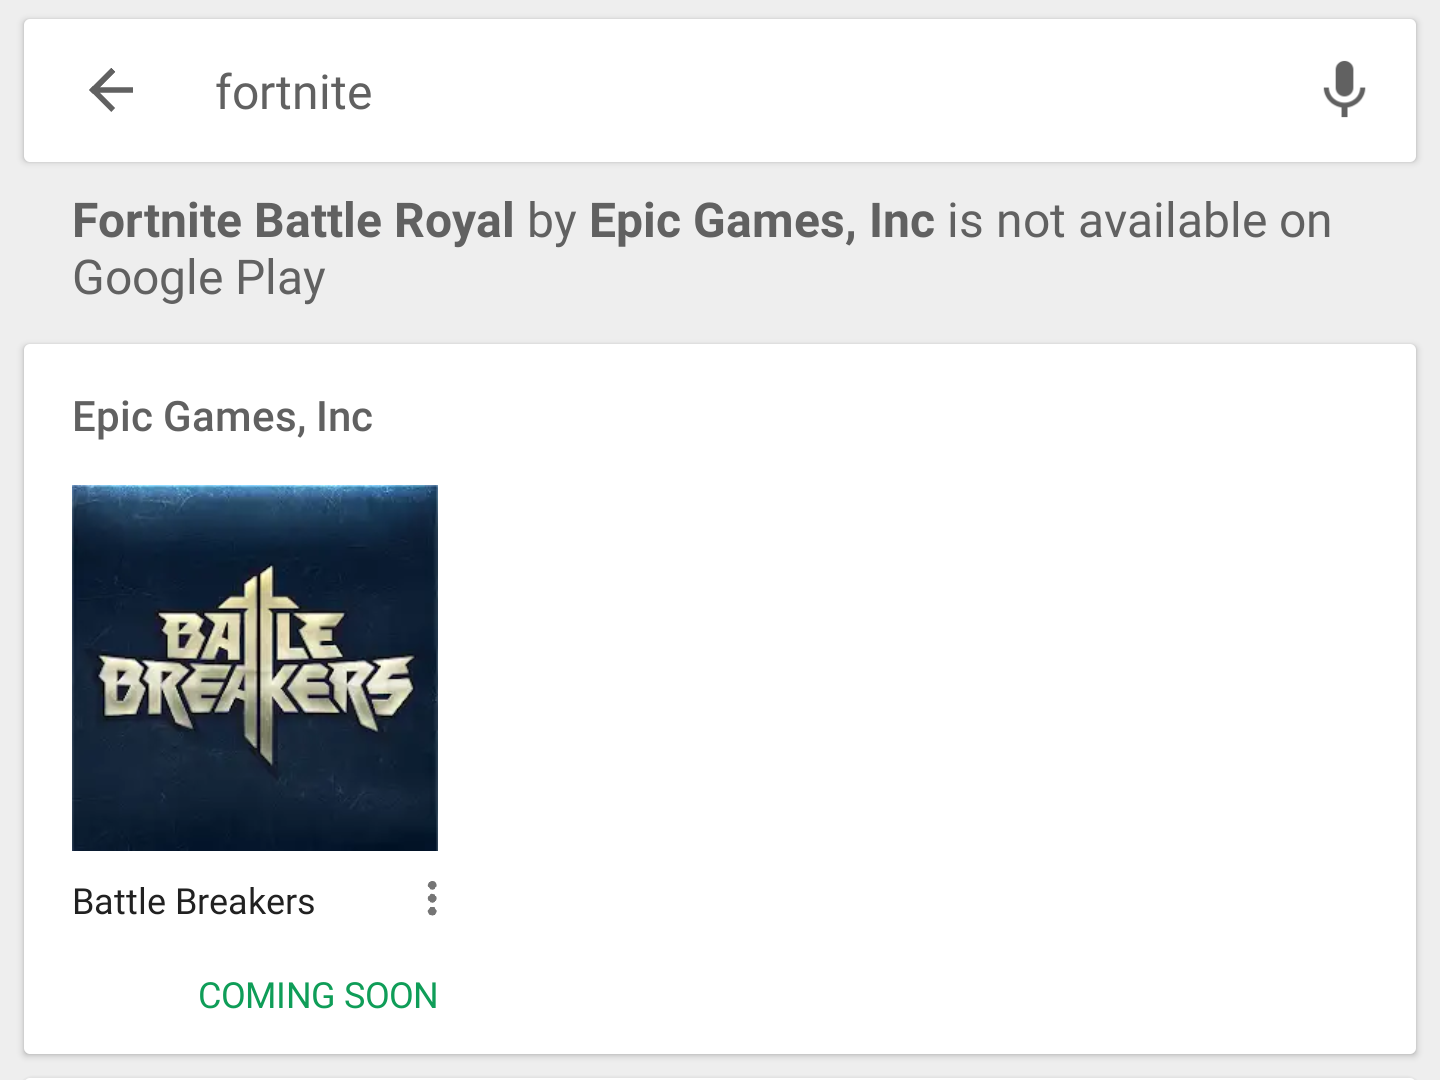 A screenshot of the warning one see when searching for Fortnite on the Google Play Store.